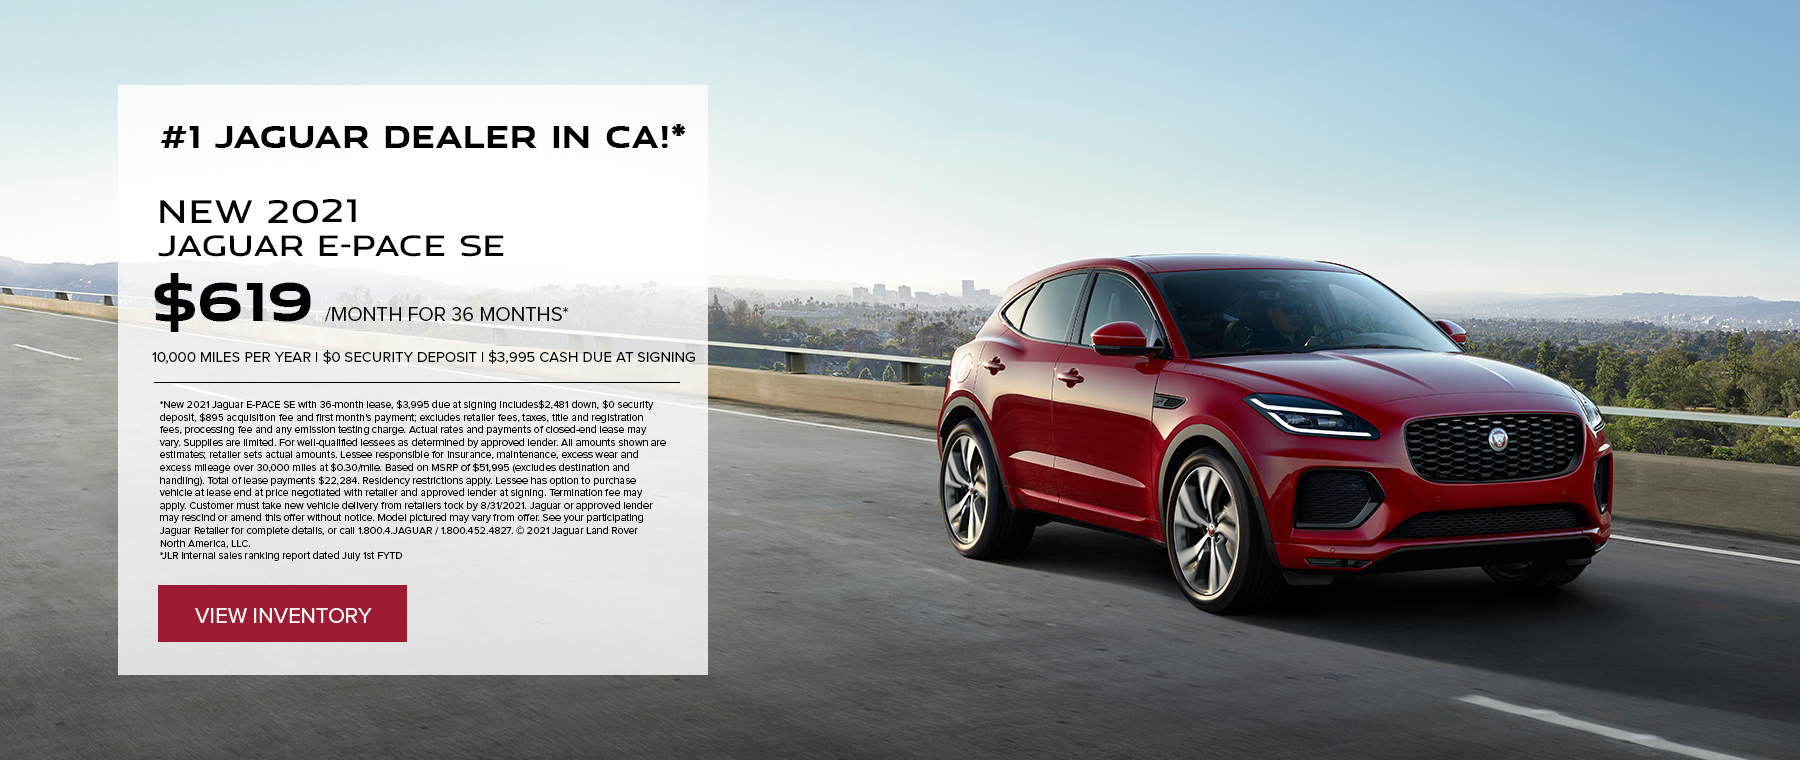 E-PACE August